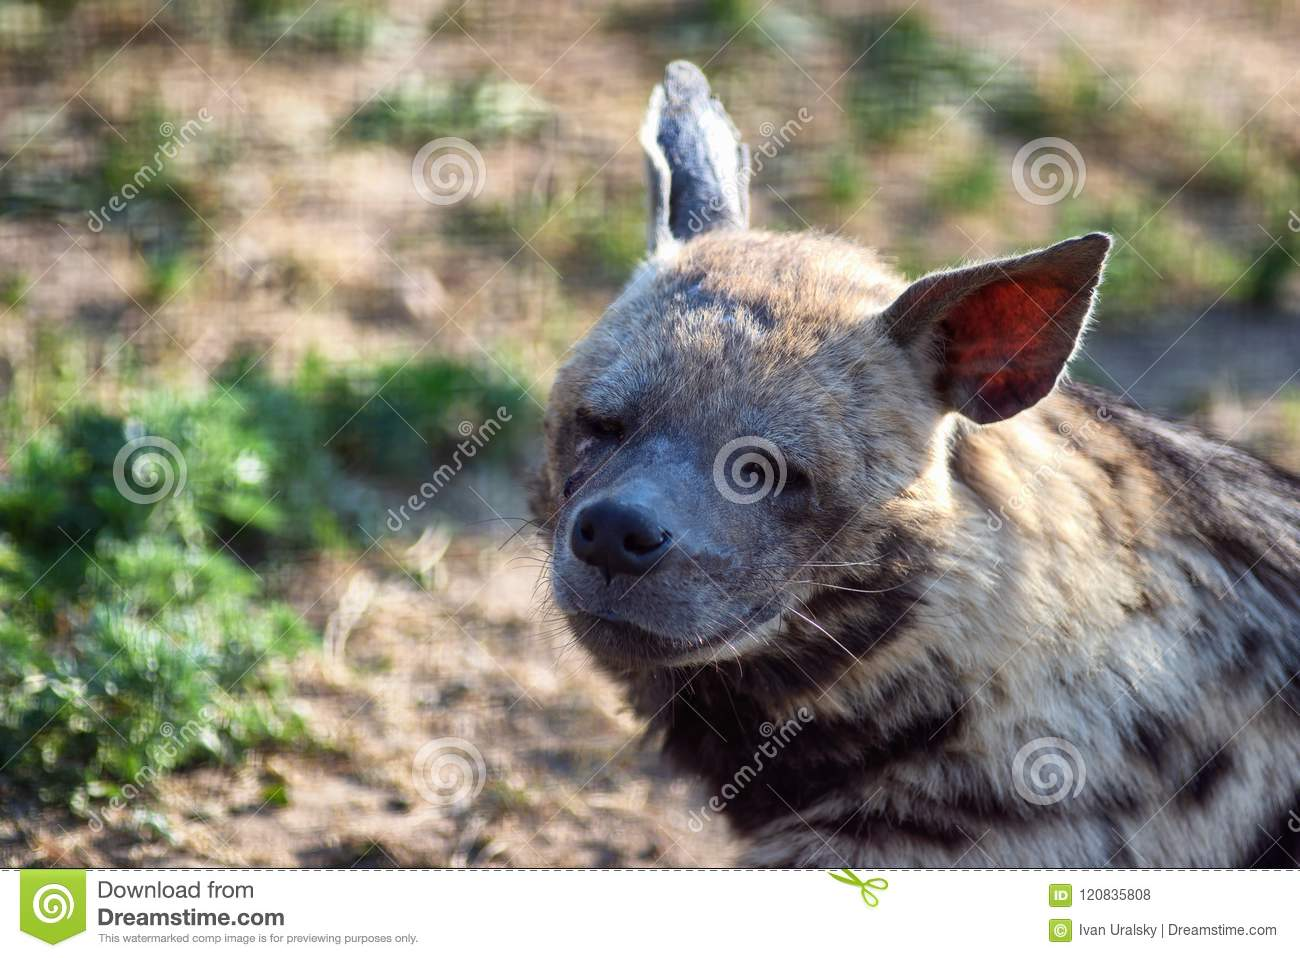 Image of: Safari Tired Hyena Looks Into The Camera Photo Portrait Of Wild Animal Dreamstimecom Tired Hyena Looks Into The Camera Photo Portrait Of Wild Animal